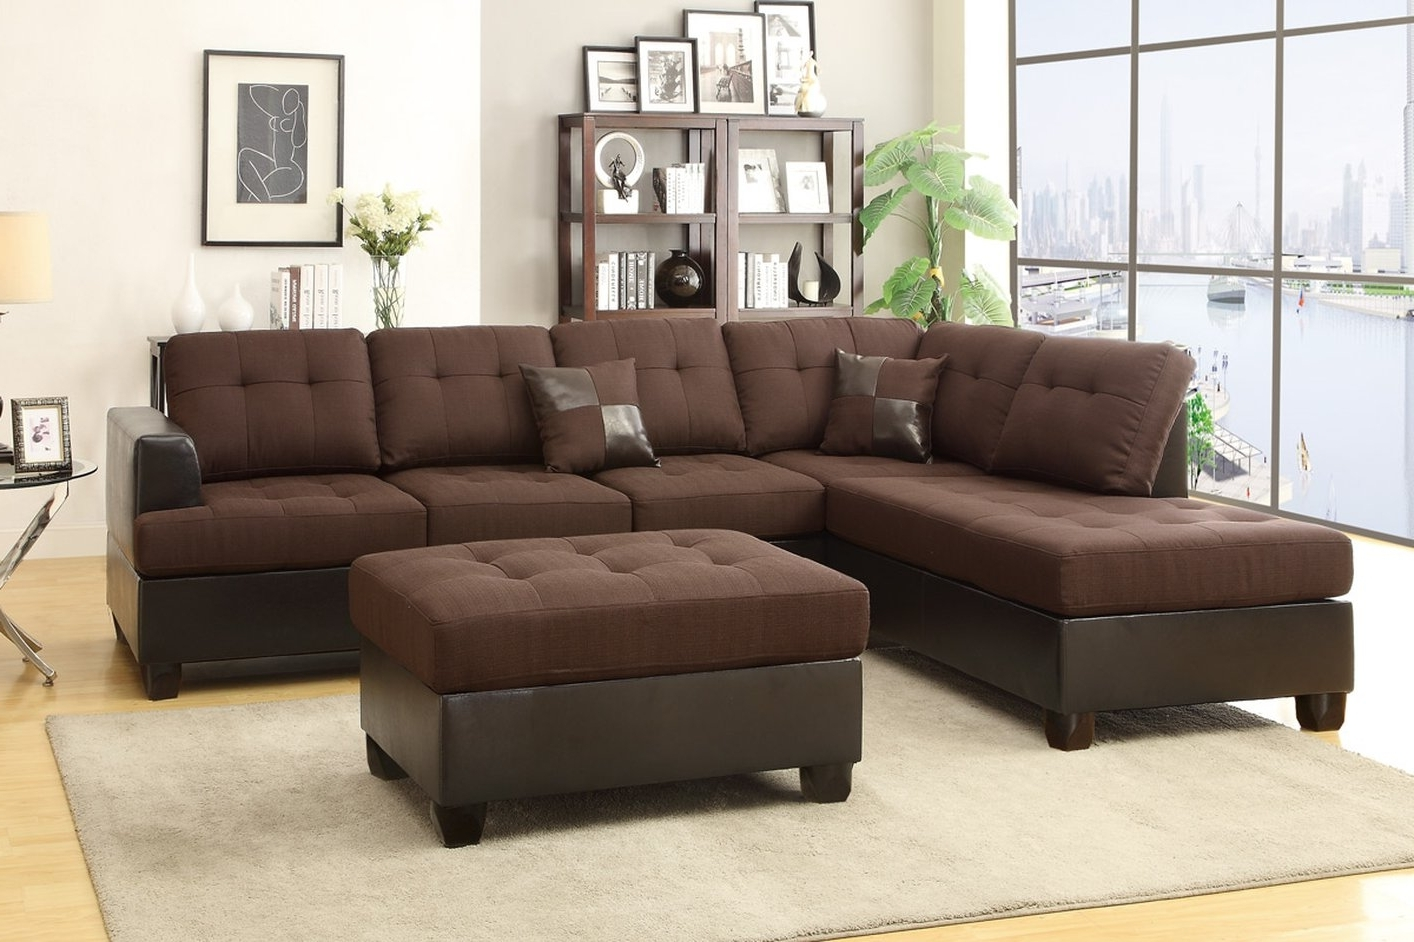 Latest Sectional Sofa Design: Super Chocolate Brown Sectional Sofa Throughout Chocolate Brown Sectional Sofas (View 14 of 20)